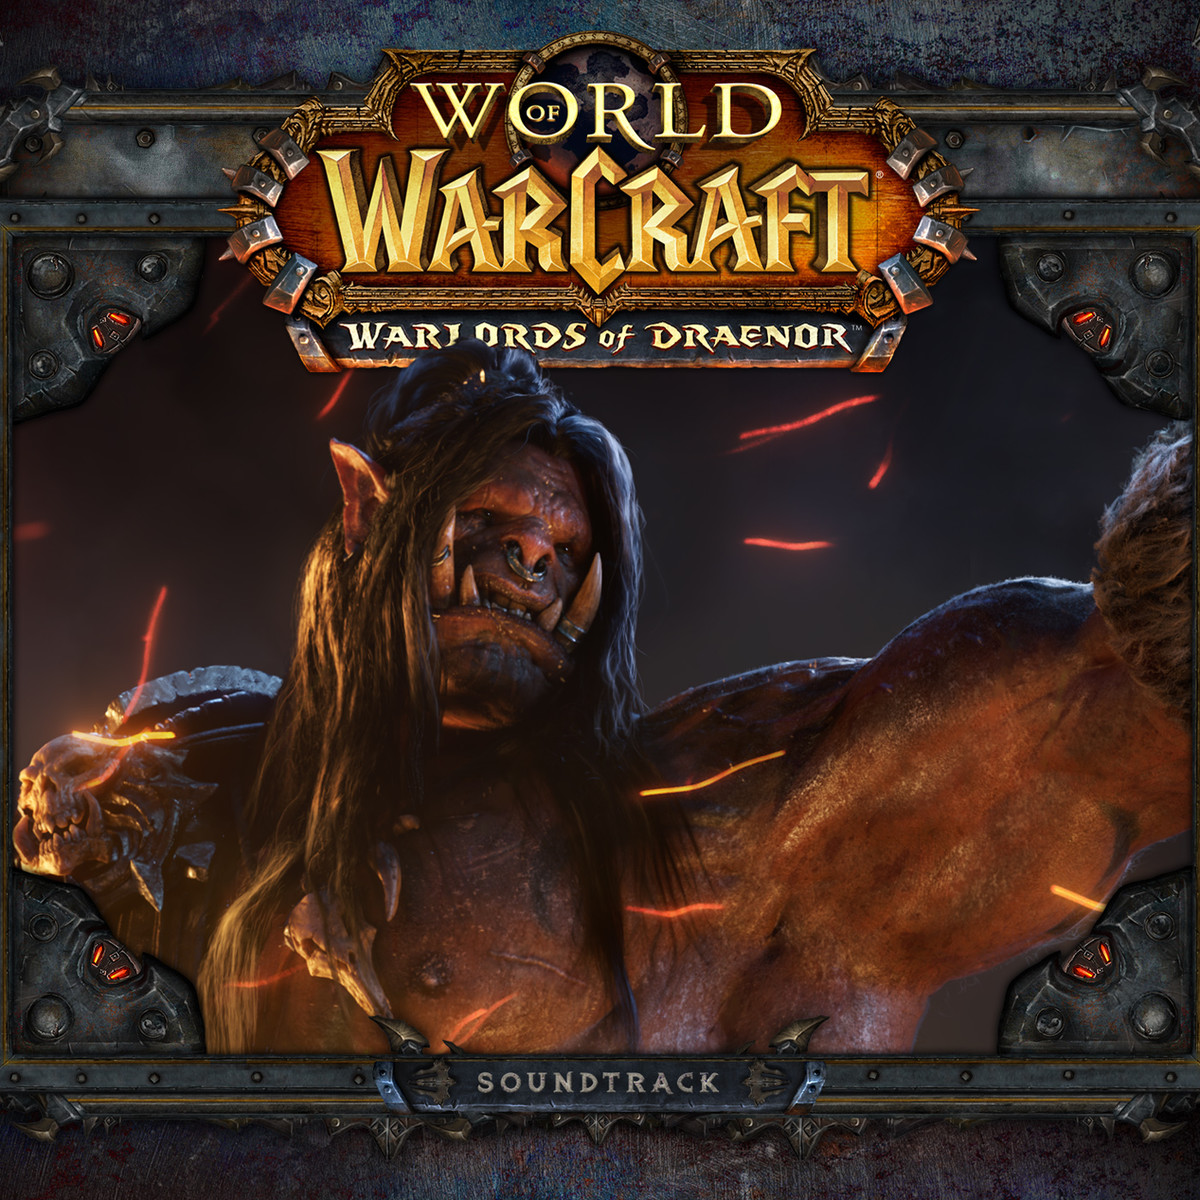 World_of_Warcraft_Warlords_of_Draenor_Soundtrack_cover1200x1200.jpg